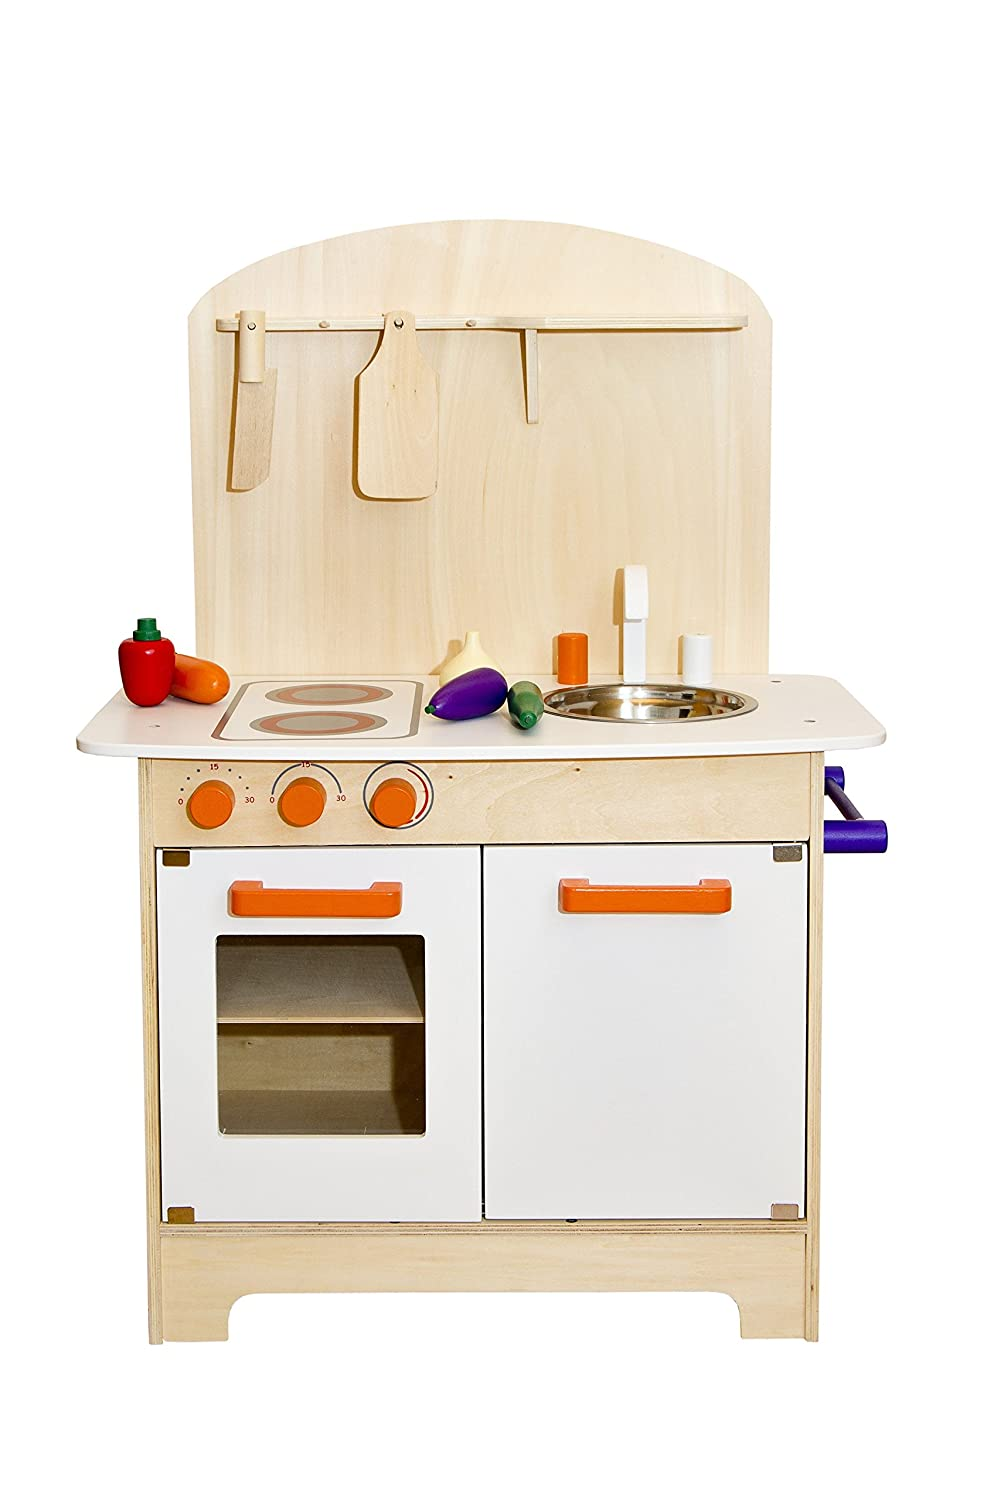 Beautiful Ikea Cucina Bambini Ideas Design Ideas 2017